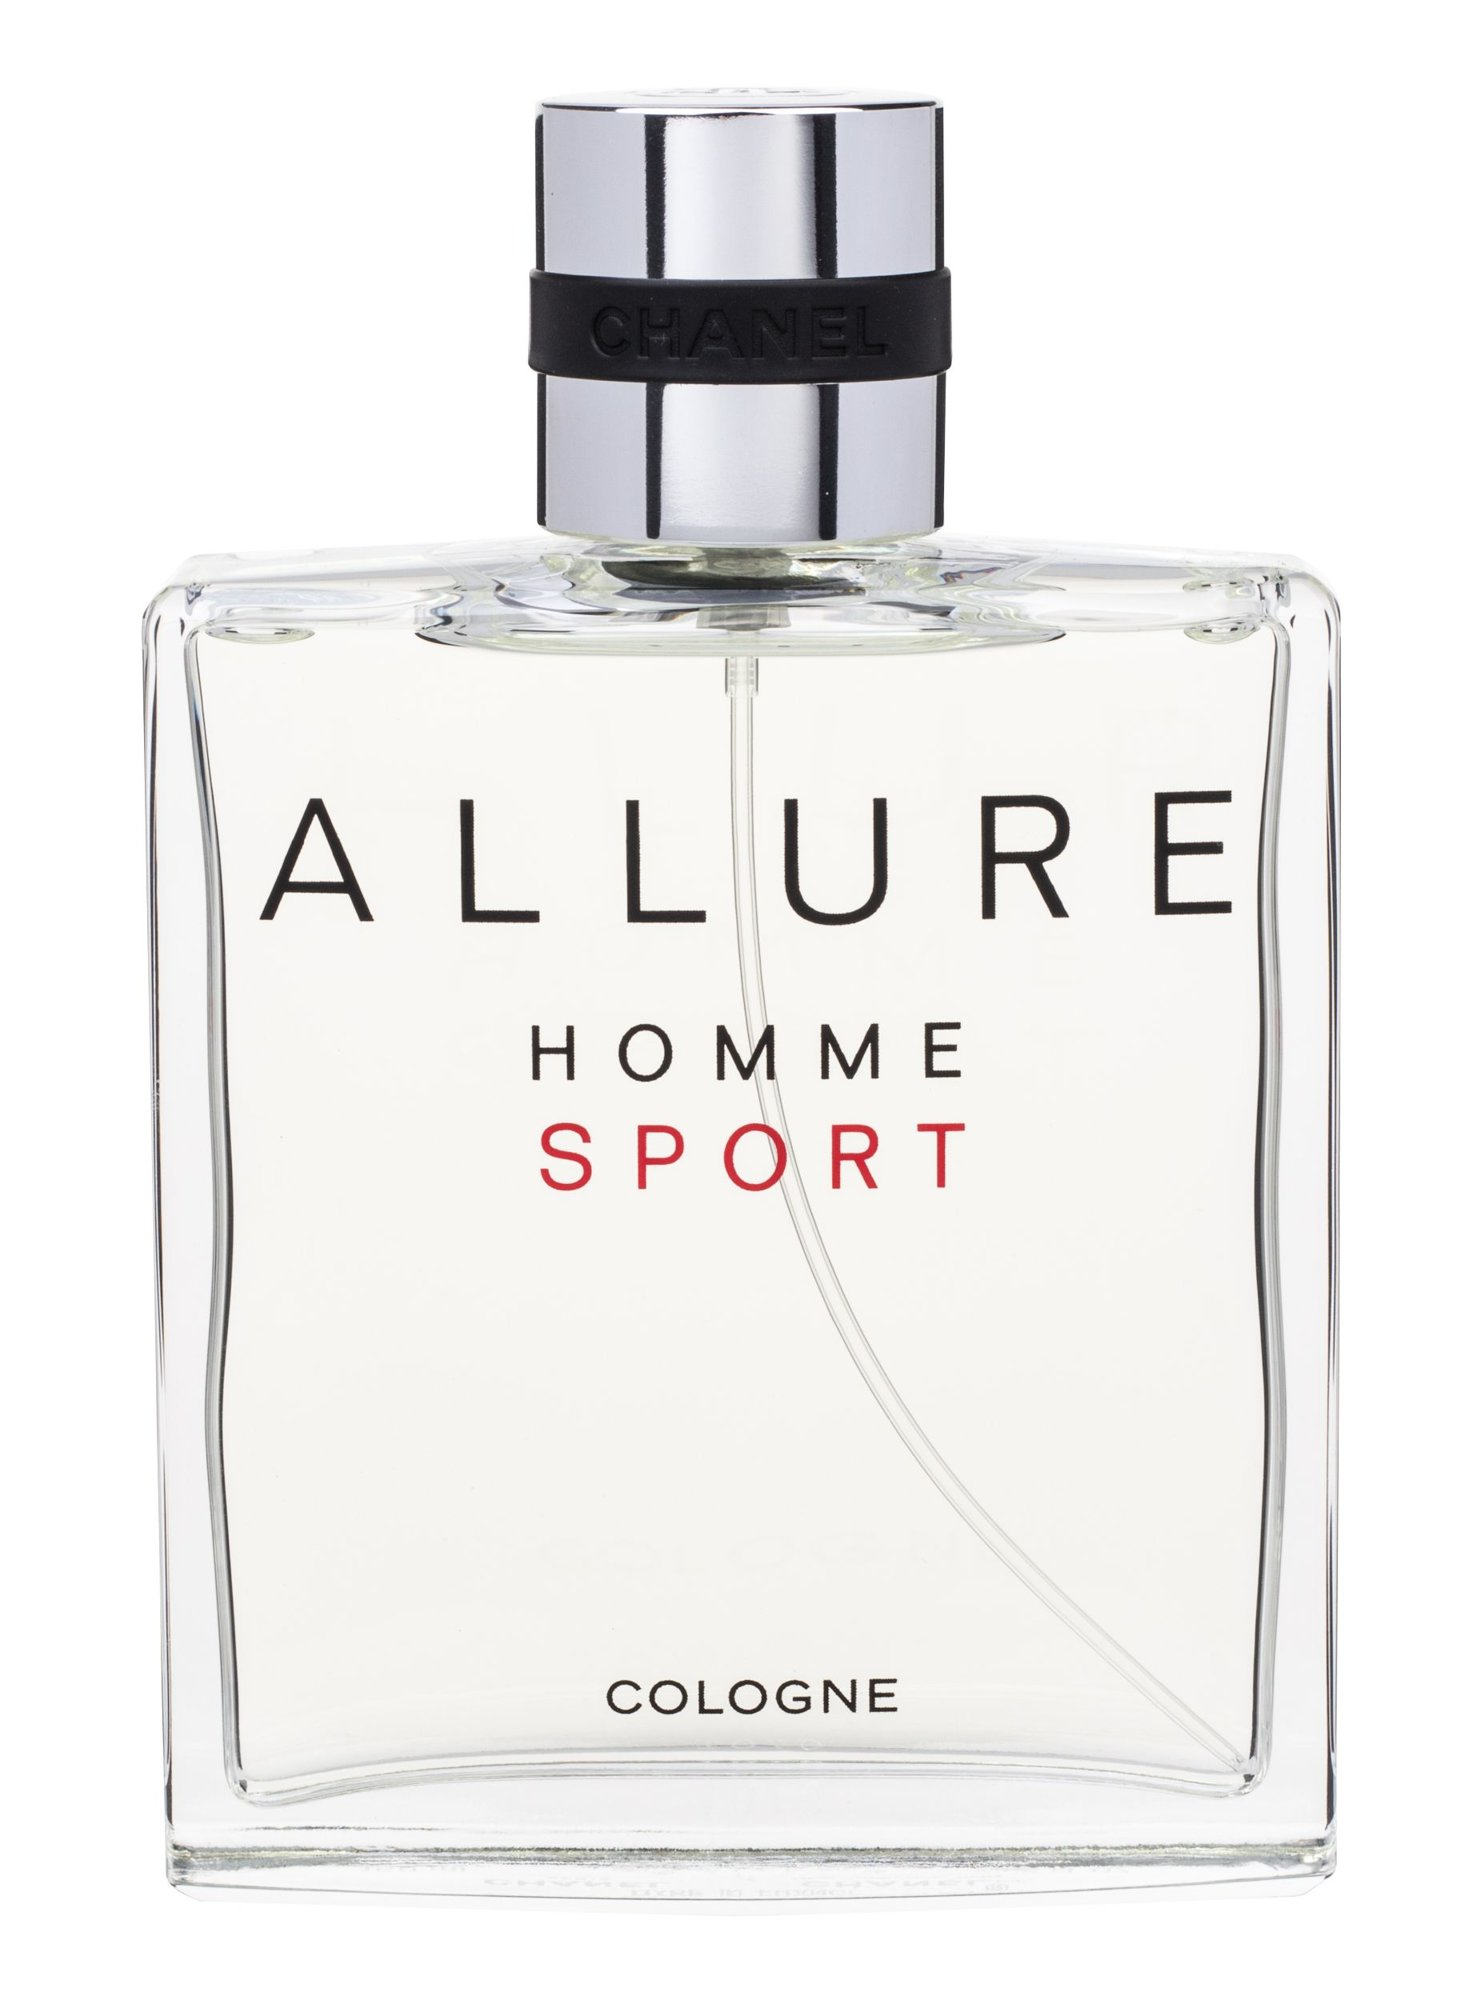 Chanel Allure Sport Cologne Cologne 150ml